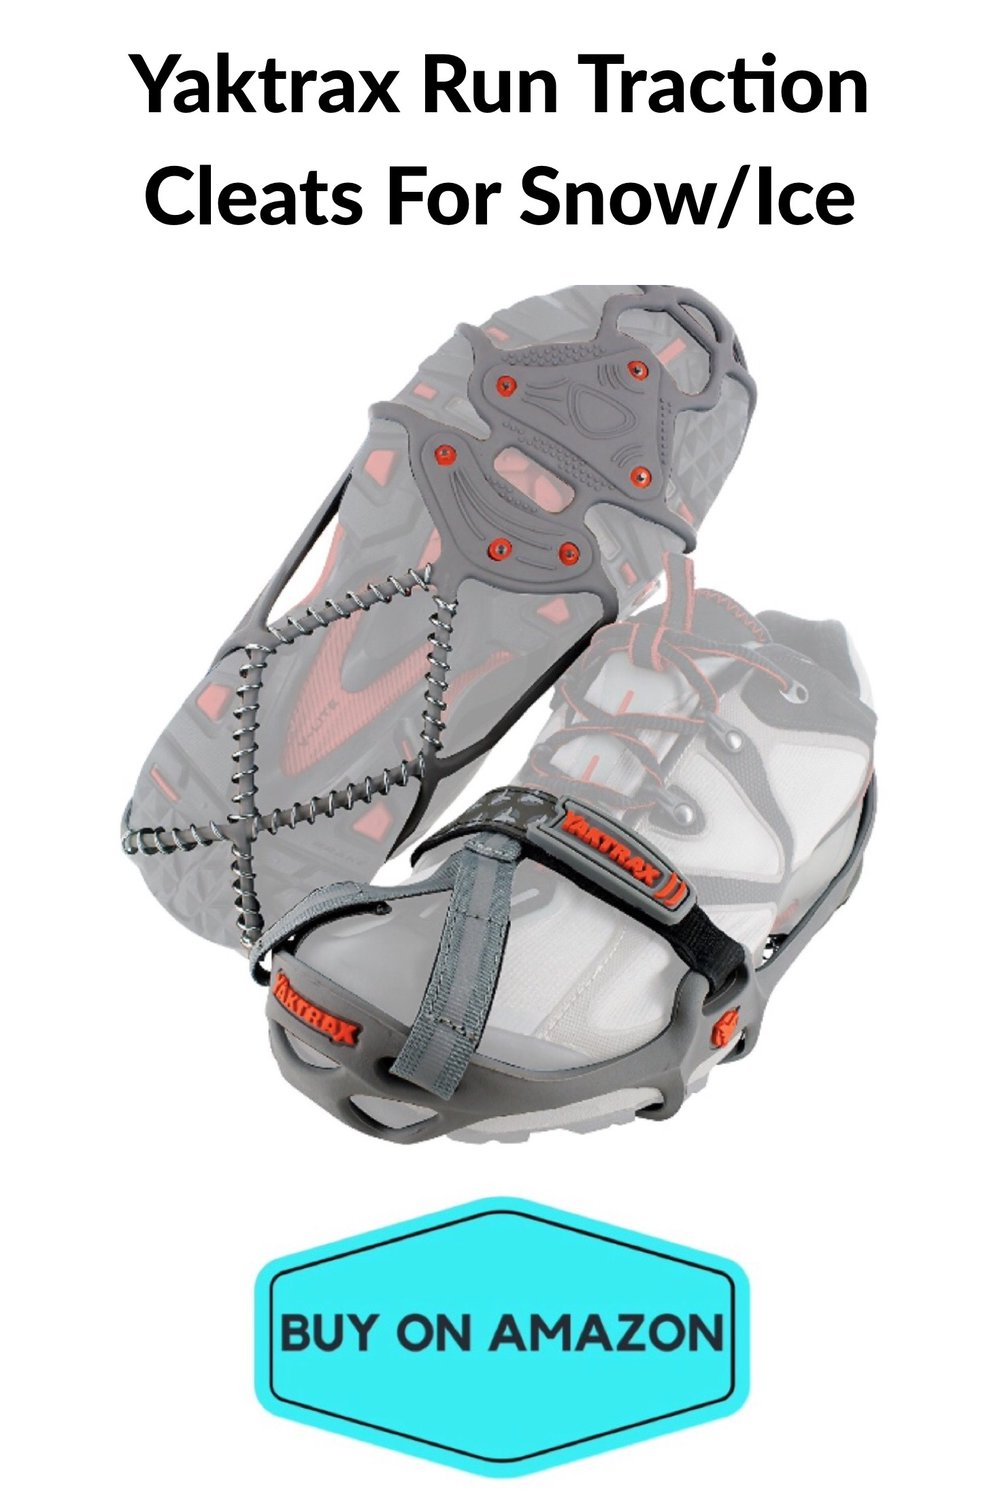 Yaktrax Run Traction Cleats For Snow/Ice